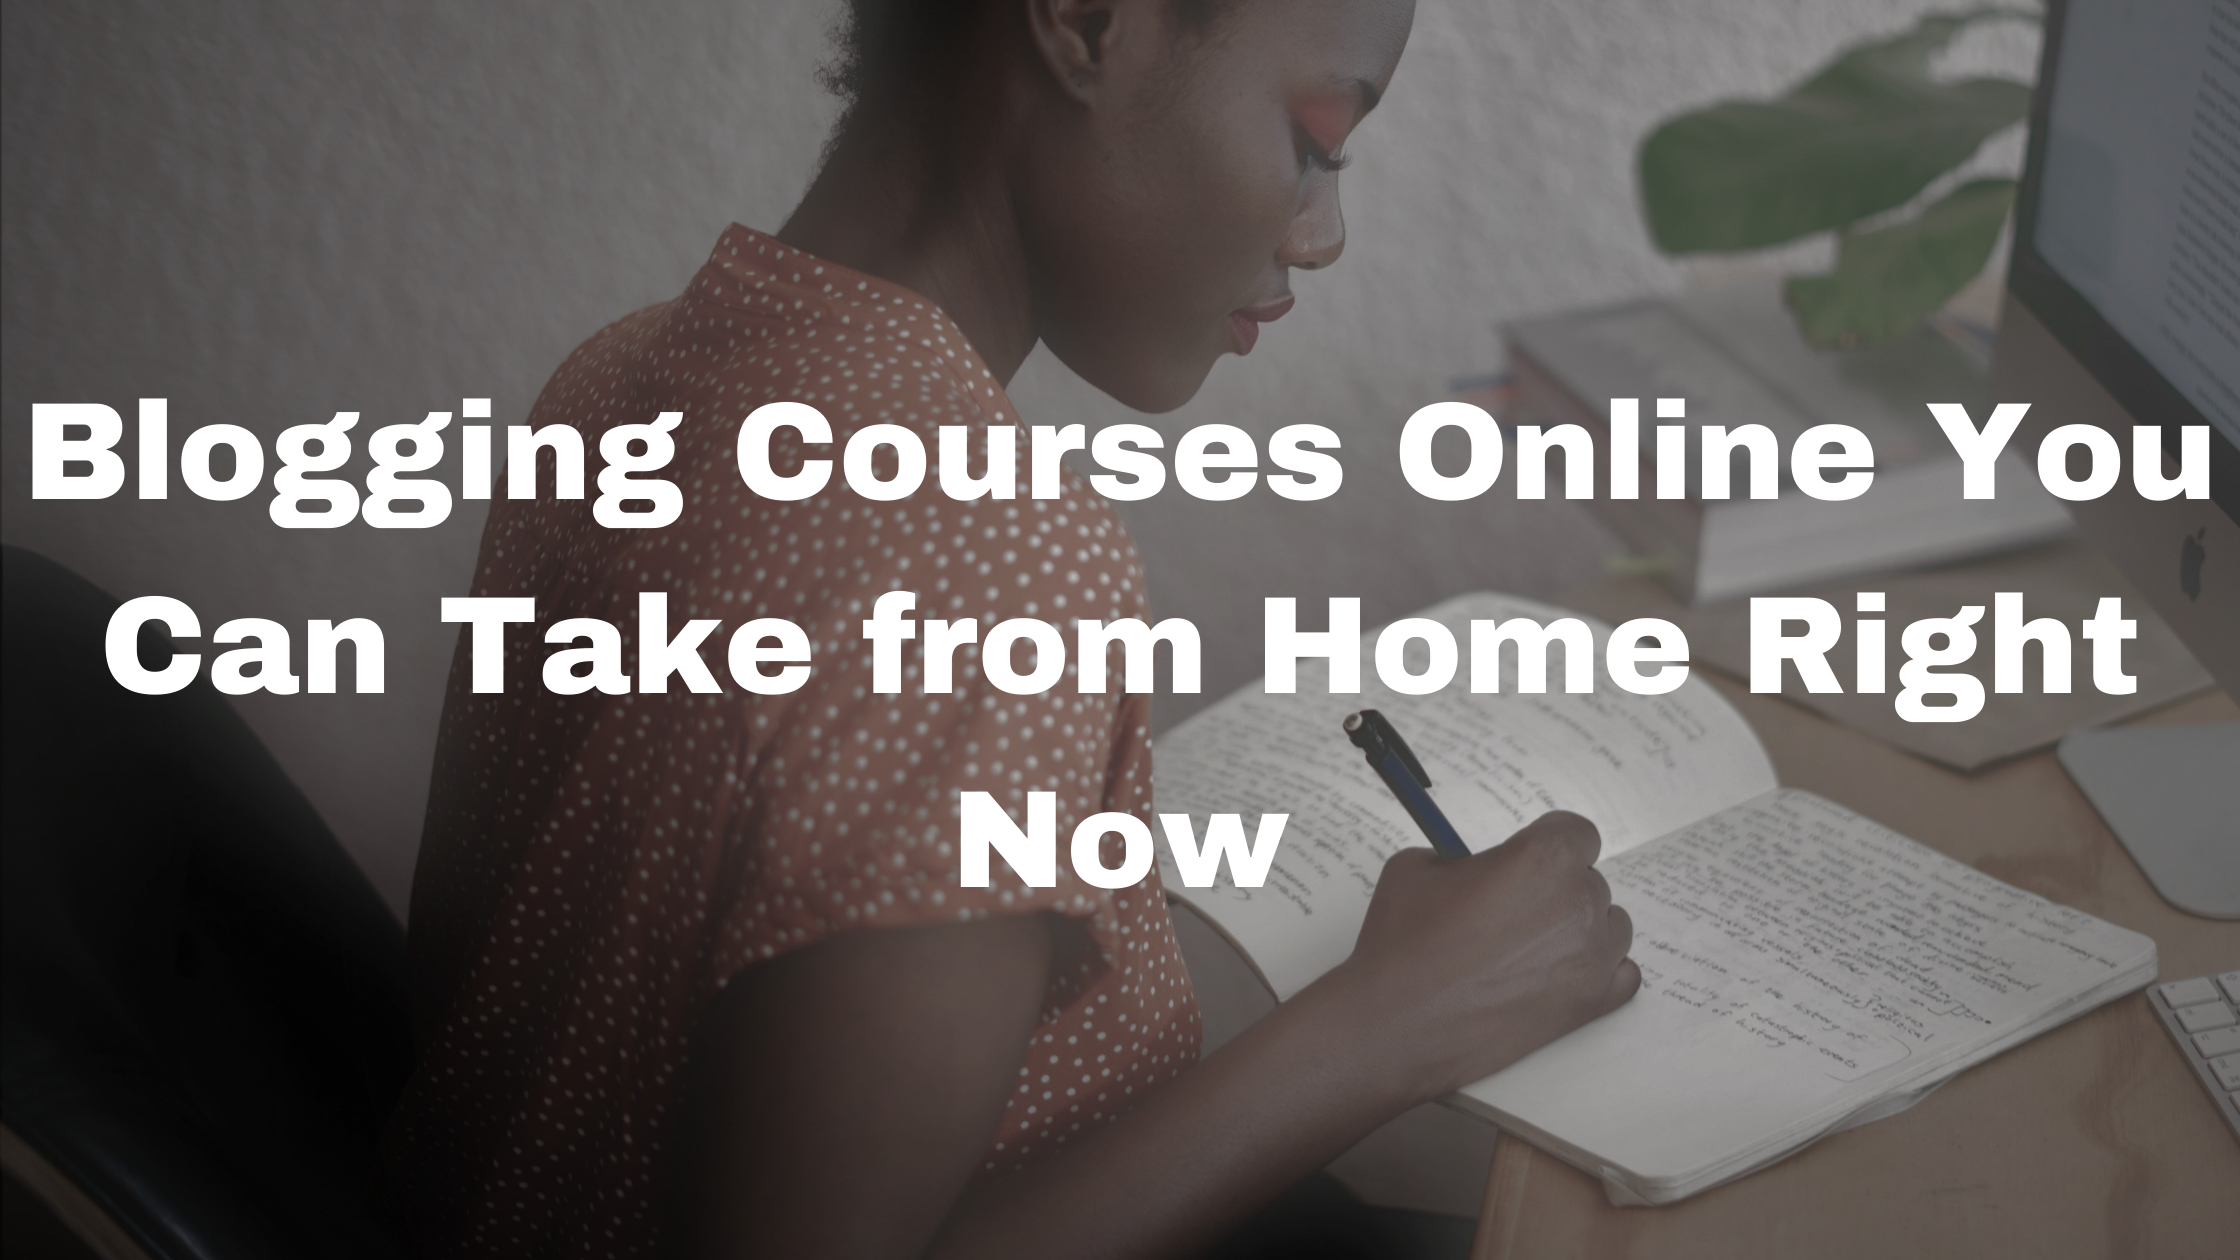 Blogging Courses Online You Can Take from Home Right Now